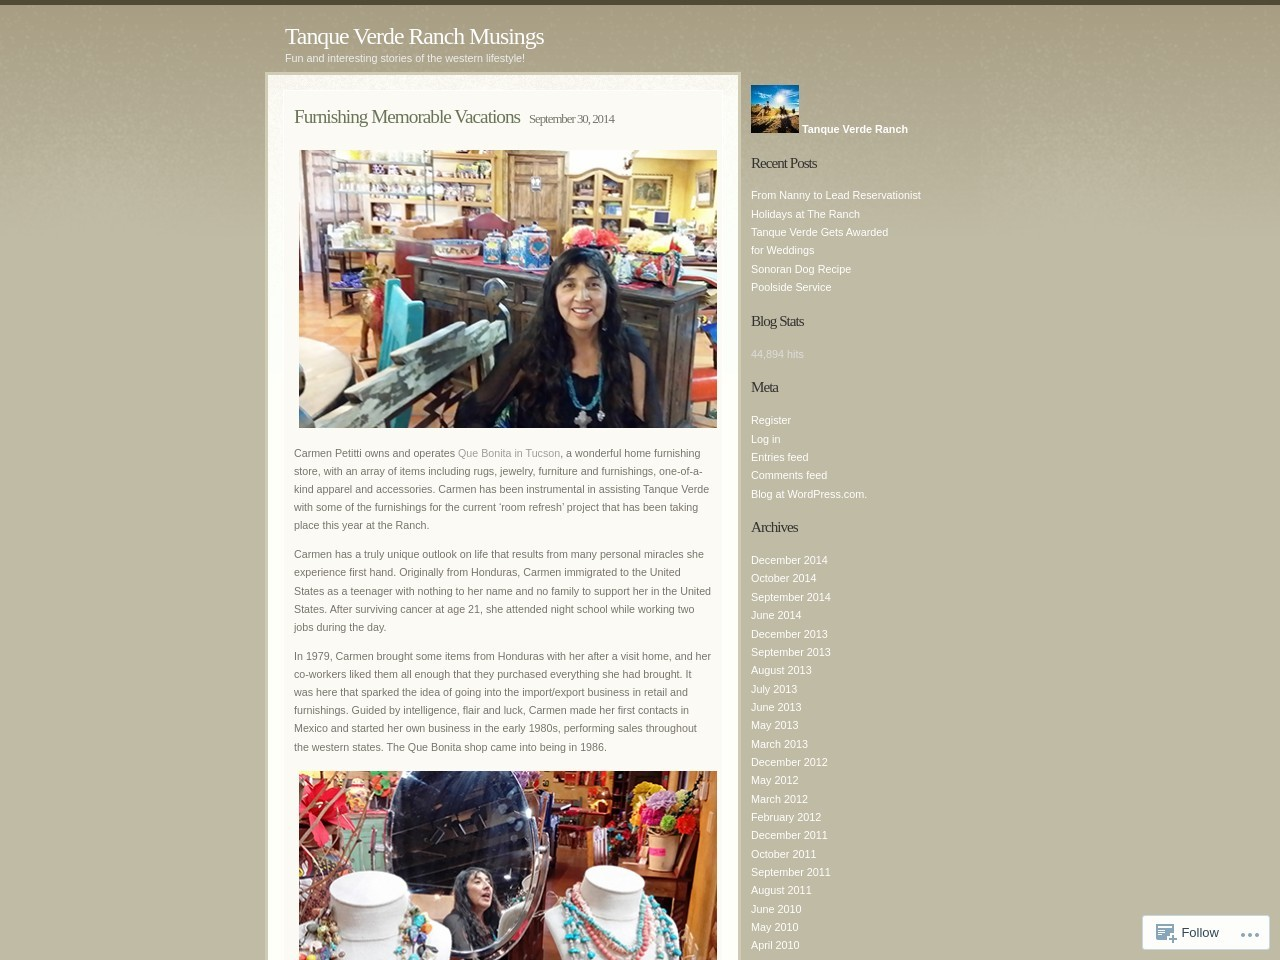 Furnishing Memorable Vacations | Tanque Verde Ranch …